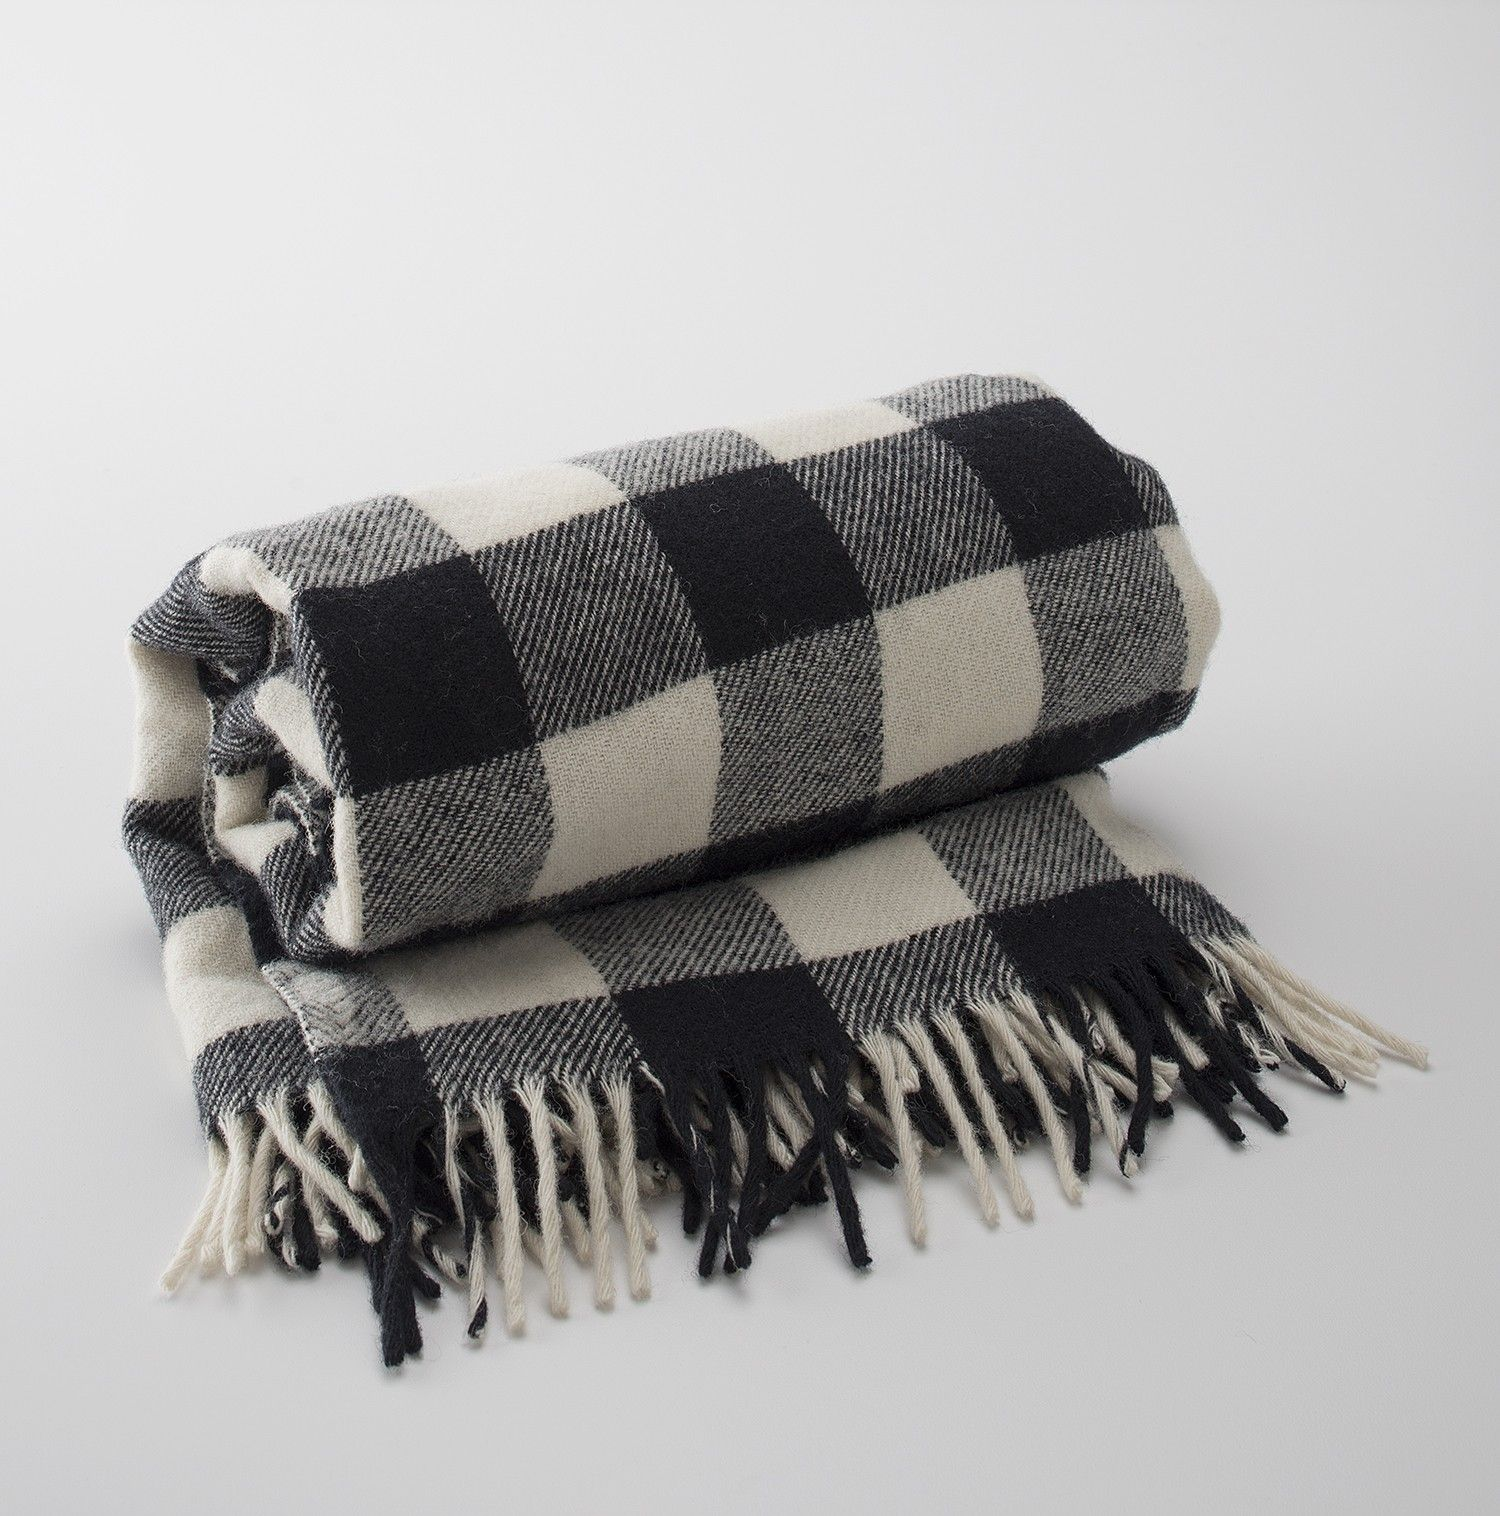 Bettwäsche Buffalo Buffalo Plaid Fringed Throw 46 布艺 搭毯 Fabric Take A Blanket